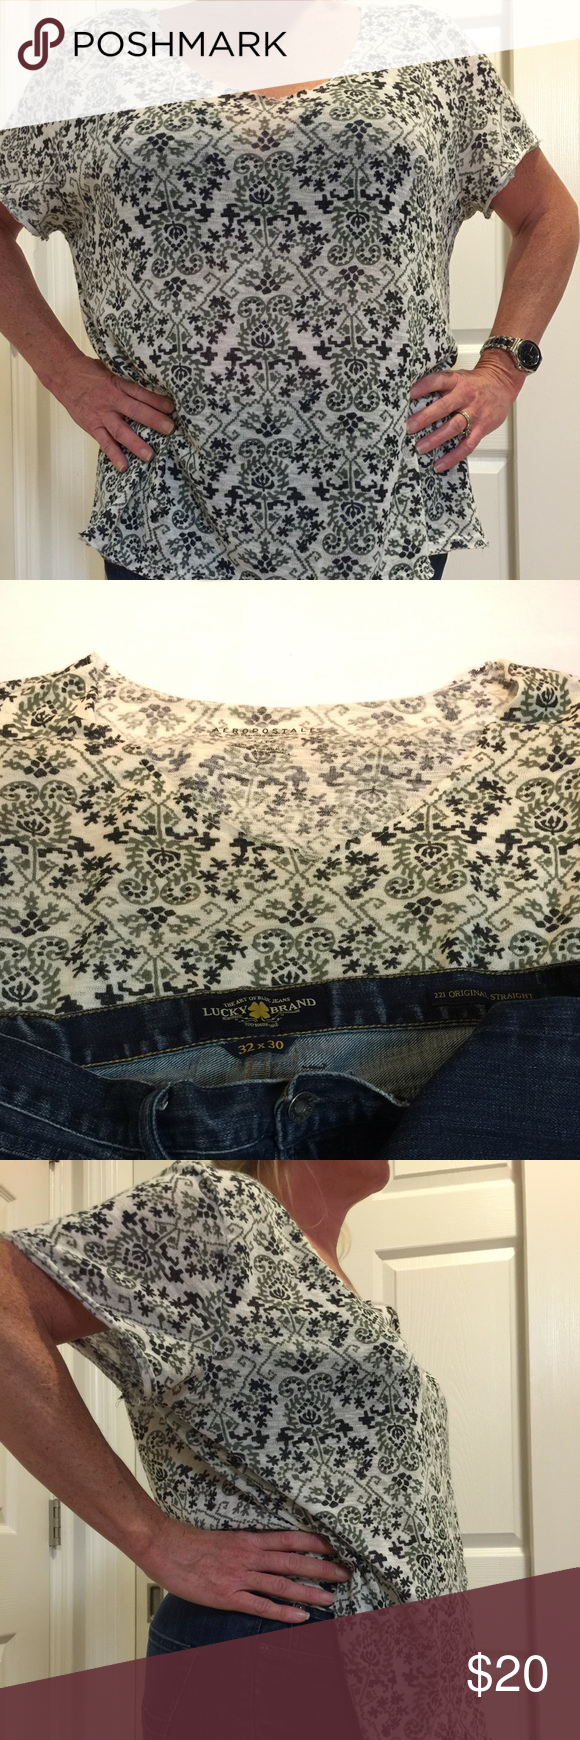 """AeropostaleXL versatile printed light summer shirt Deep navy blue, hunter green & white """"Aztec"""" print make this shirt eye catchingly different. Super light, you can throw a solid cami underneath & let it hang off one shoulder to add appeal. Pair it with anything from jeans or leggings to shorts or a mini skirt! Aeropostale Tops Blouses"""